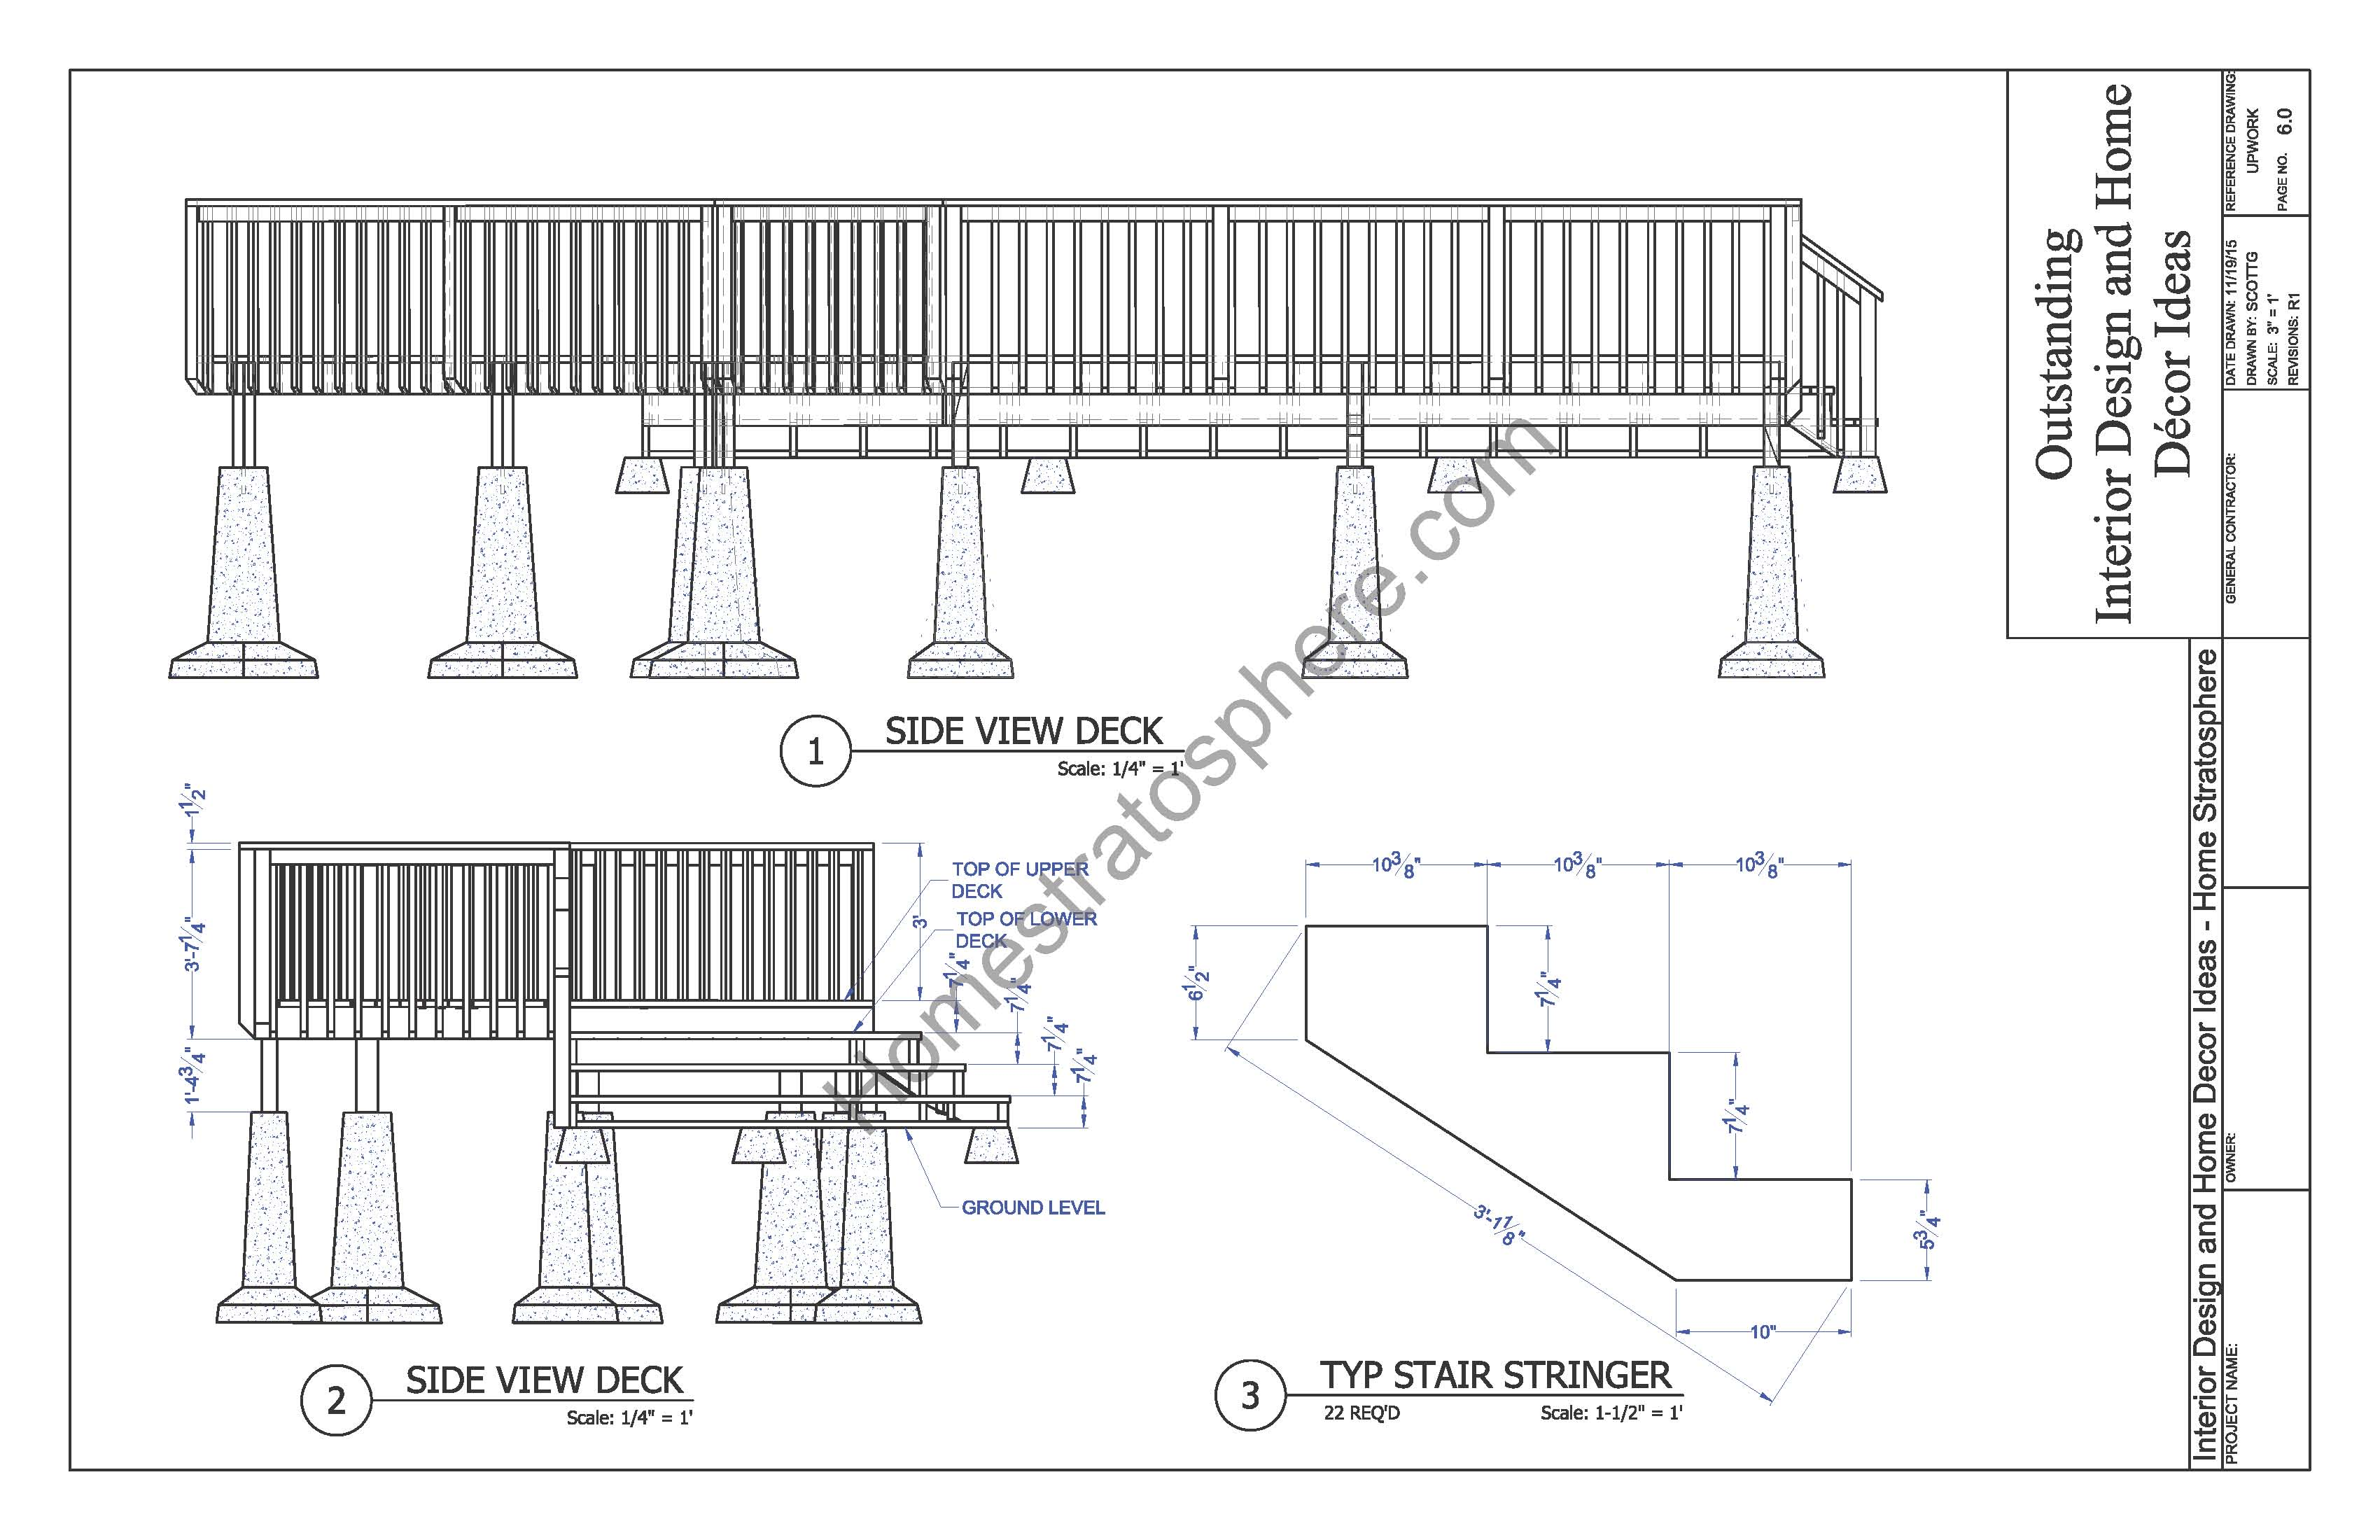 2 level deck plan blueprint free pdf download for Ground level deck plans pdf